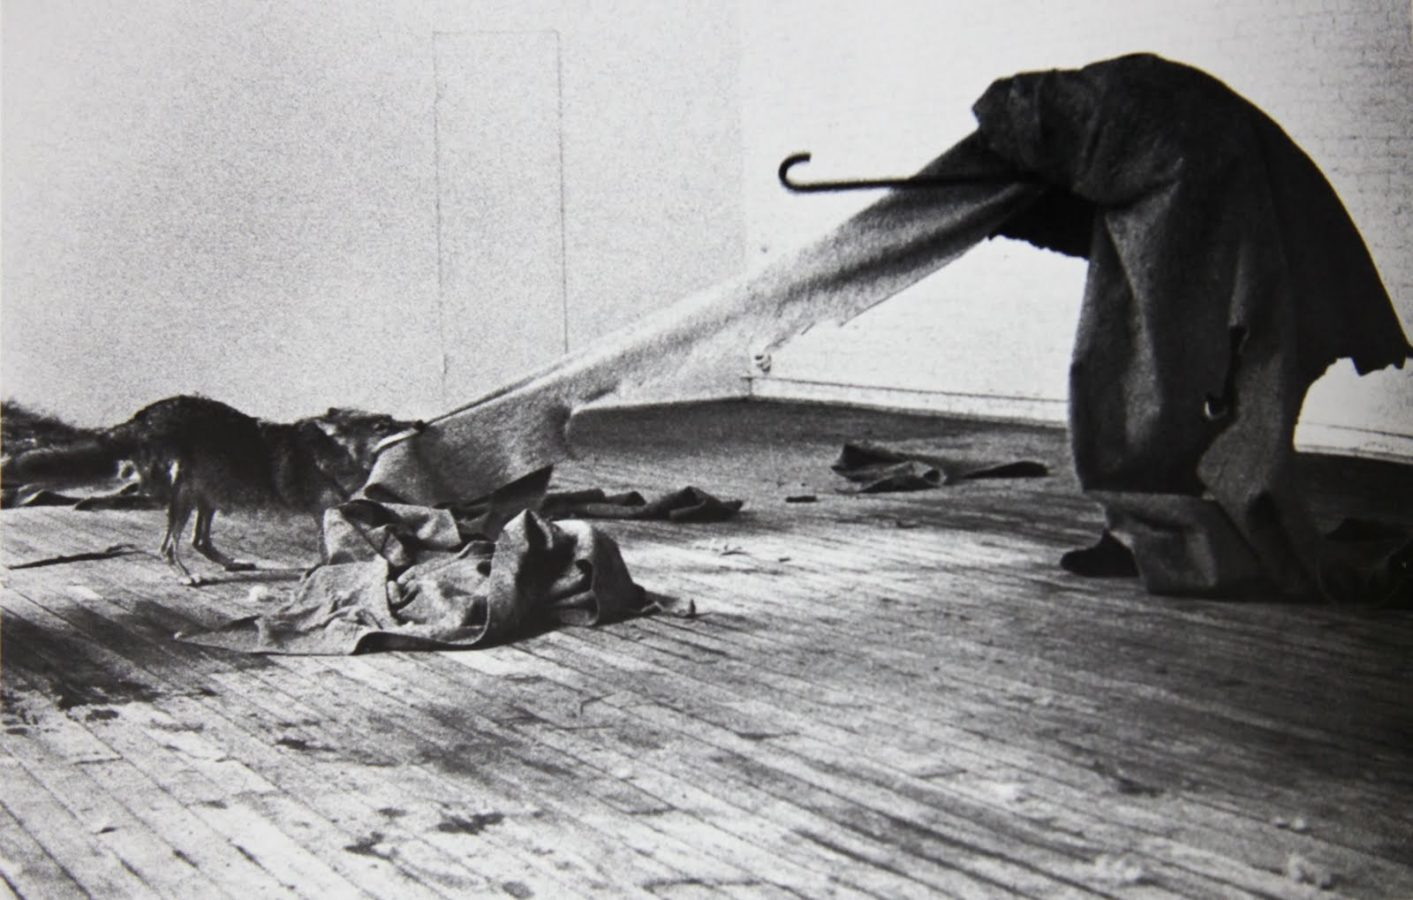 Joseph Beuys, I like America and America Likes Me, 1974, photo by Caroline Tisdall, most important works by joseph beuys